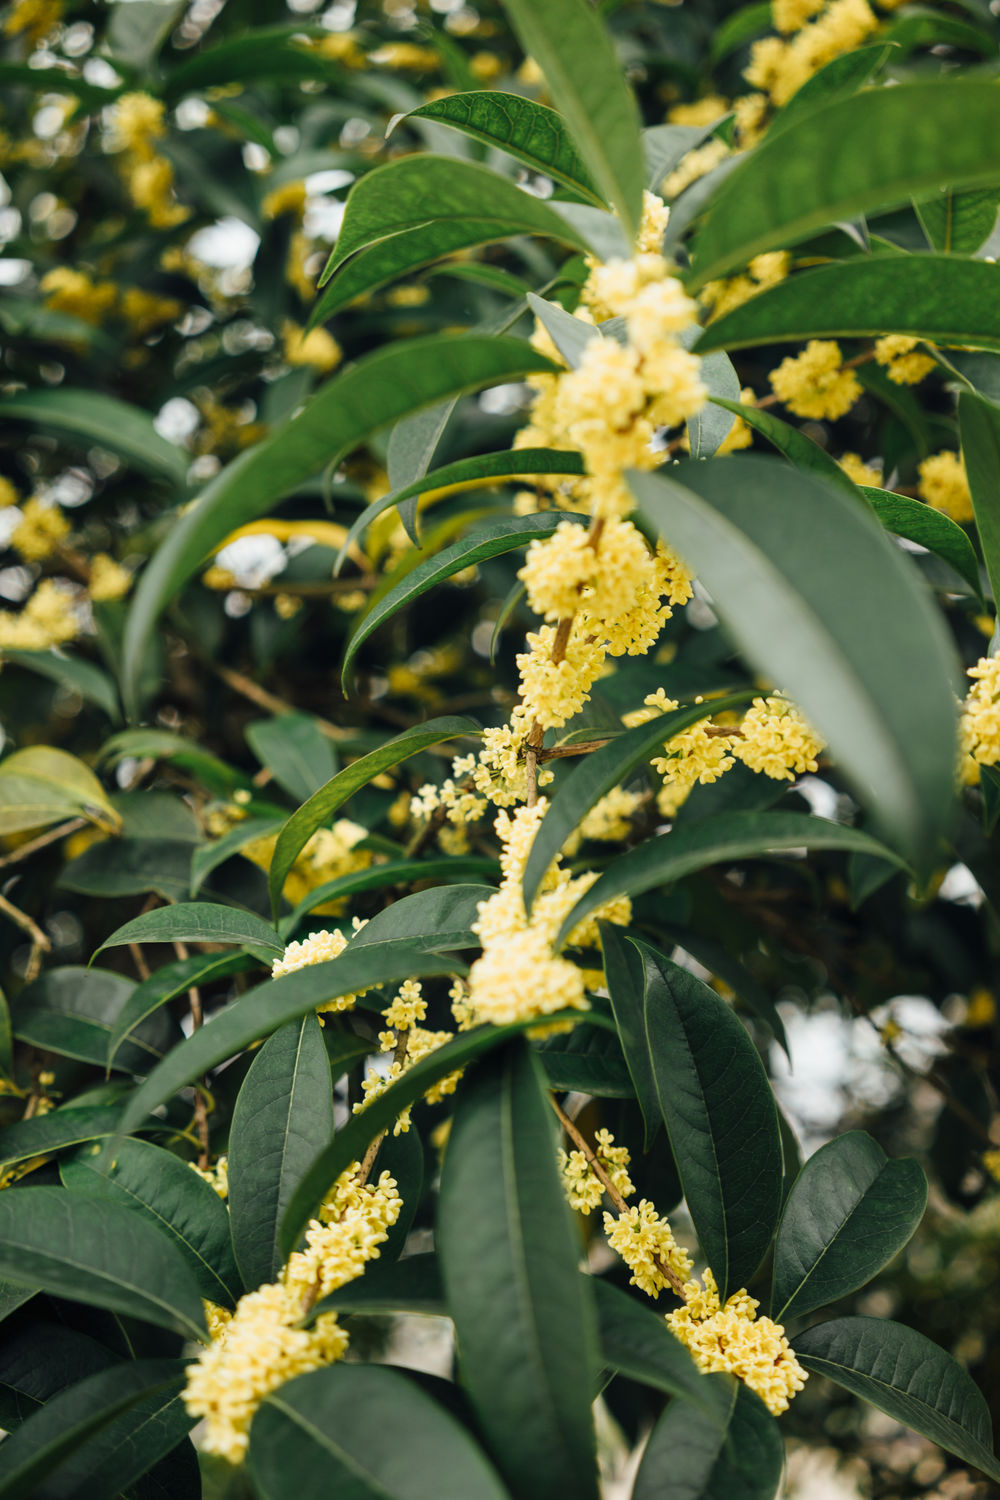 Beauty In Nature Bloom Blossom Close-up Day Flower Flower Head Fragility Freshness Green Color Growth Leaf Nature No People Osmanthus Osmanthus Fragrans Outdoors Plant Sweet Osmanthus Flower Yellow